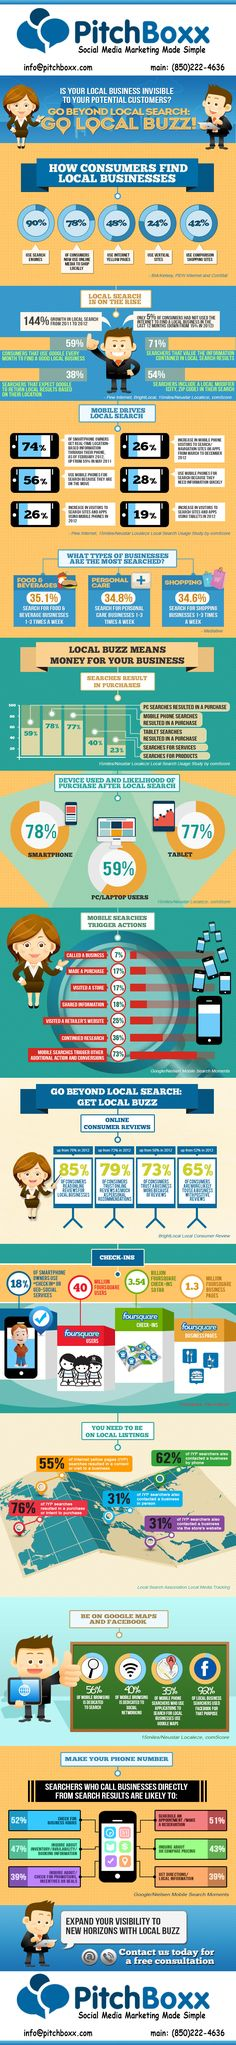 Is Your Local Business Invisible Online? Discover Local Buzz! - http://pitchboxx.com/local-business-invisible-online-discover-local-buzz-infographic/ Mediatracking.com